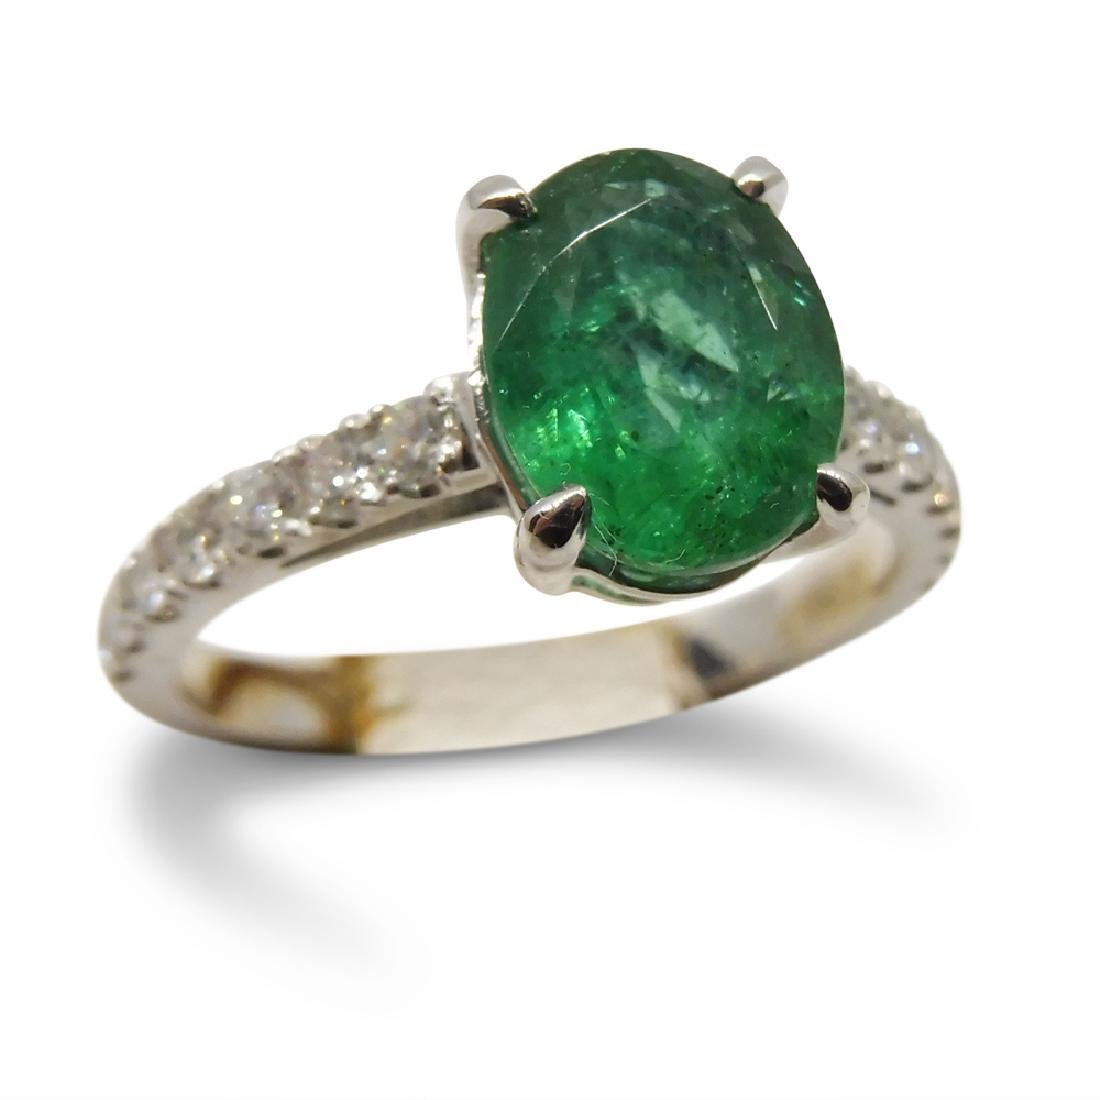 14K White Gold Emerald Diamond Ring, 1.82ct - 2